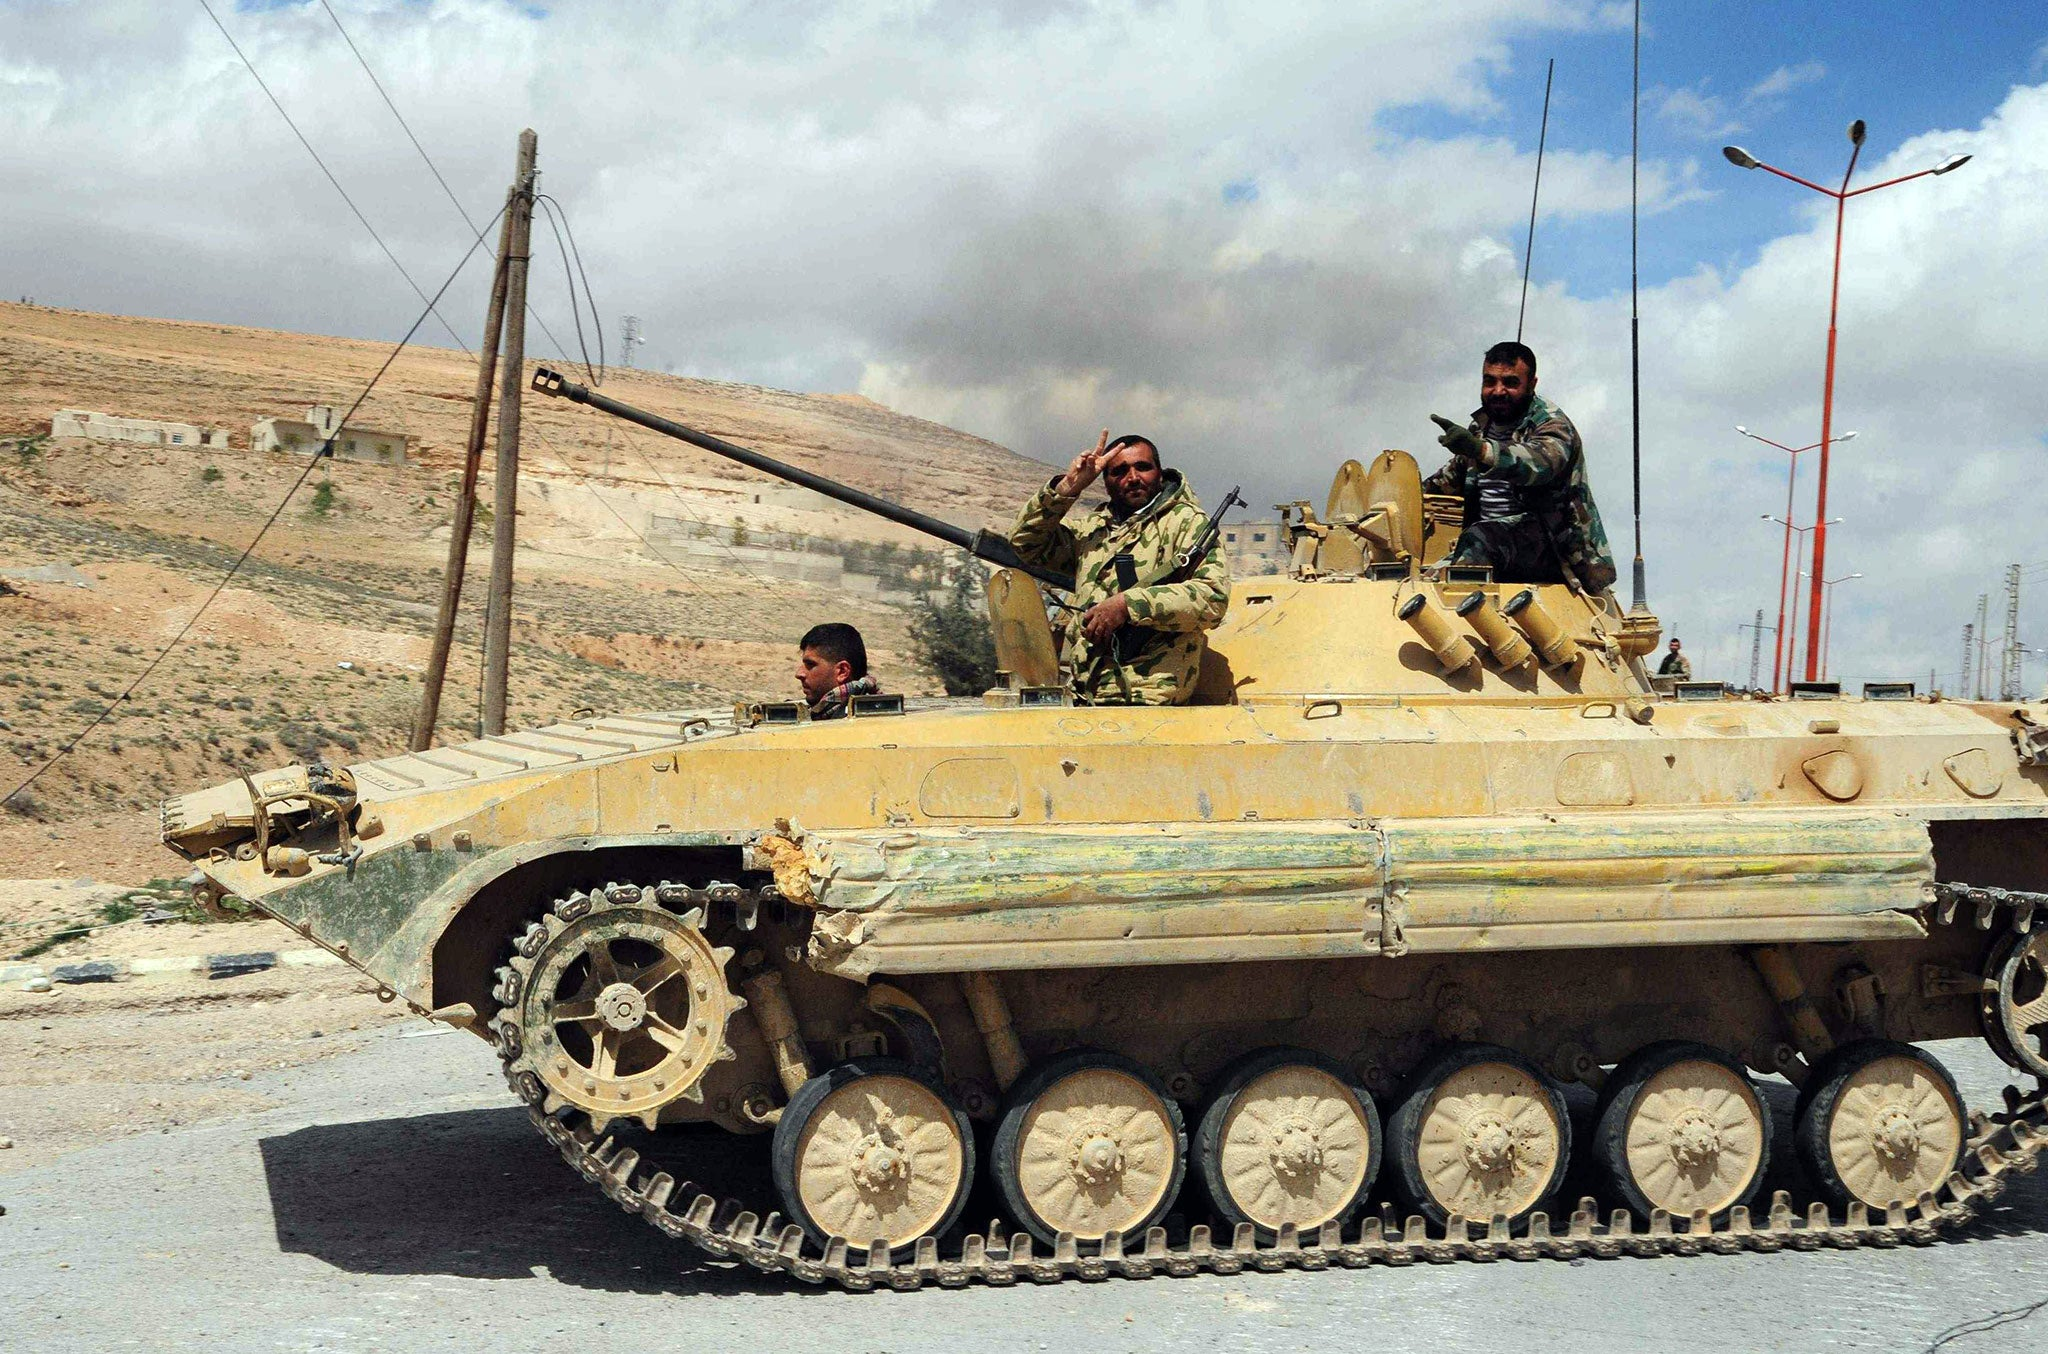 Everyone wrote off the Syrian army. Take another look now